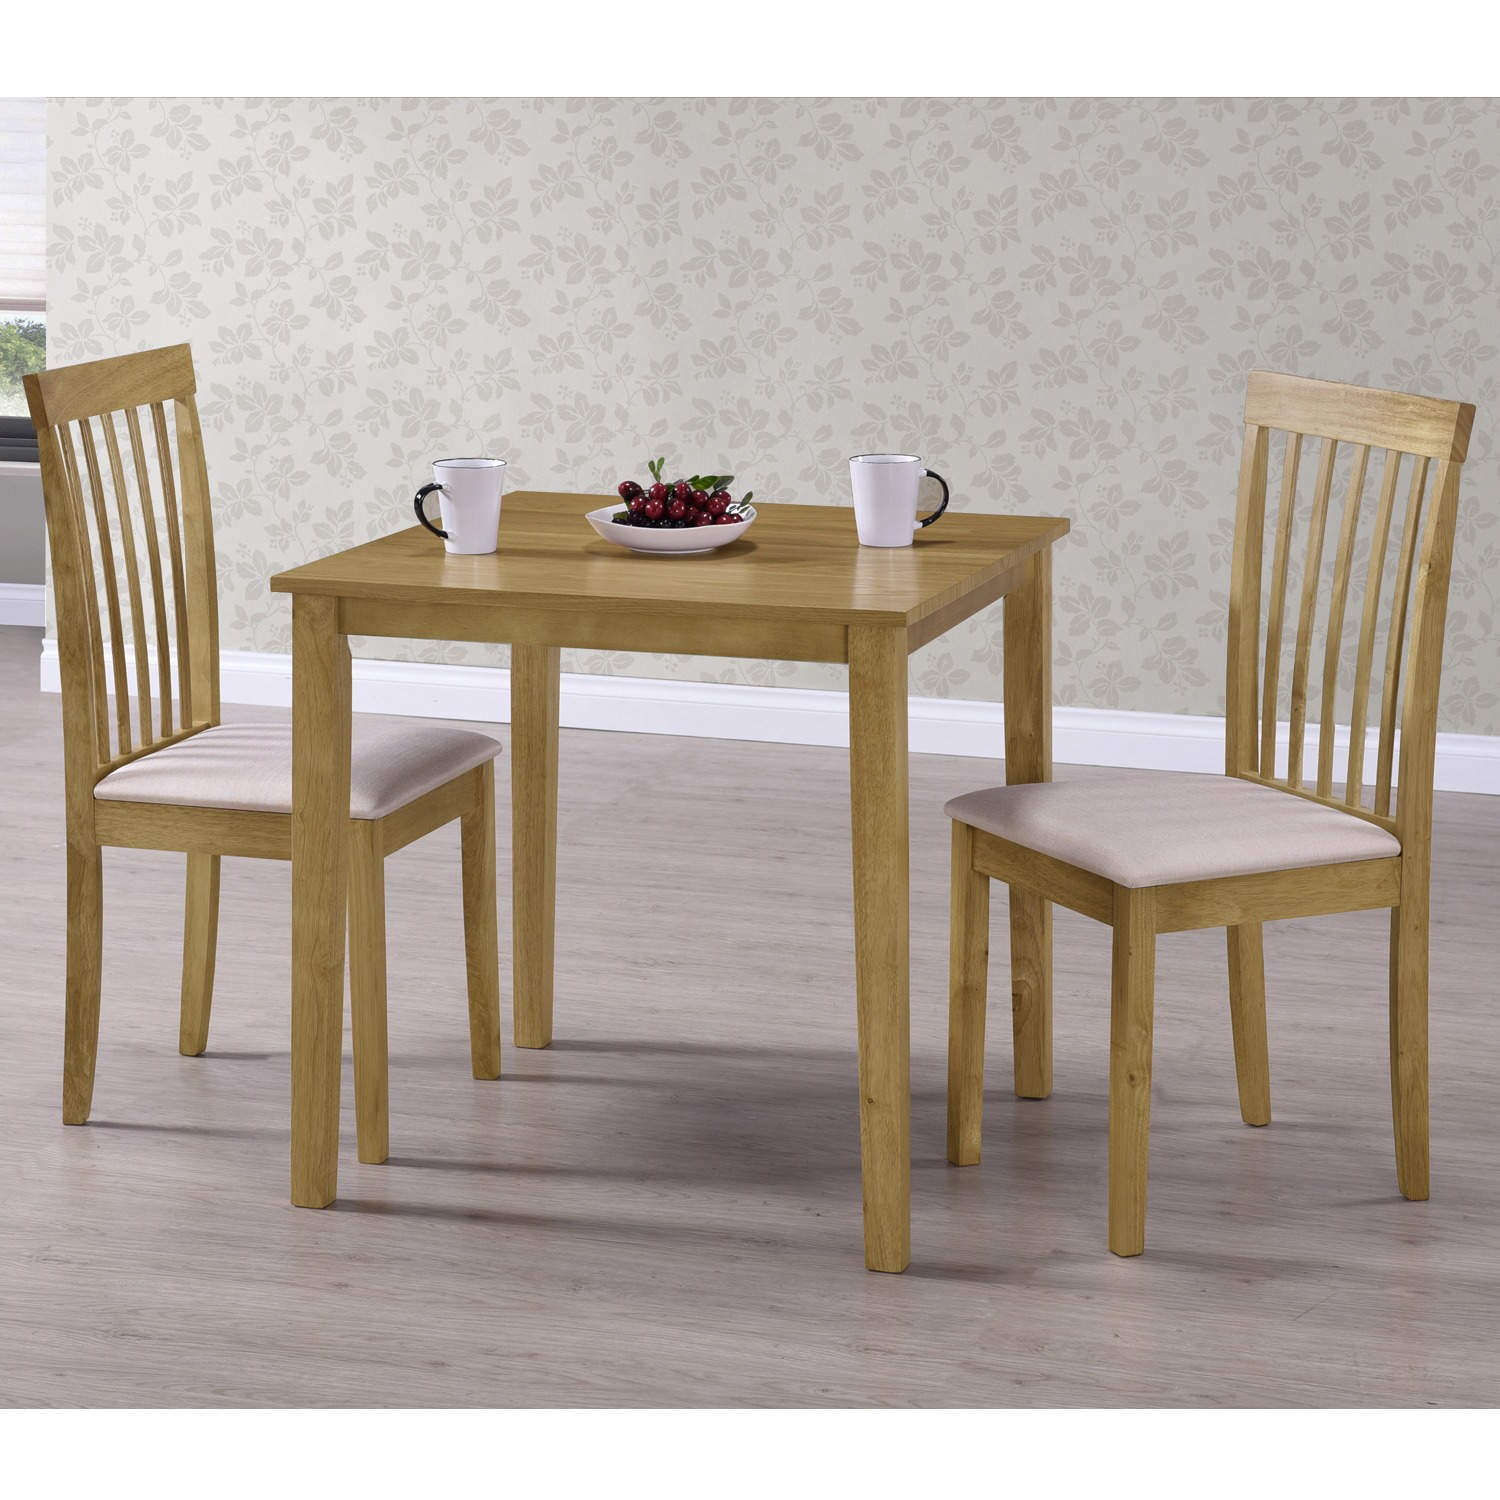 Grade A2 New Haven Small 2 Seater Dining Table In Light Oak 75cm X 75cm Furniture123